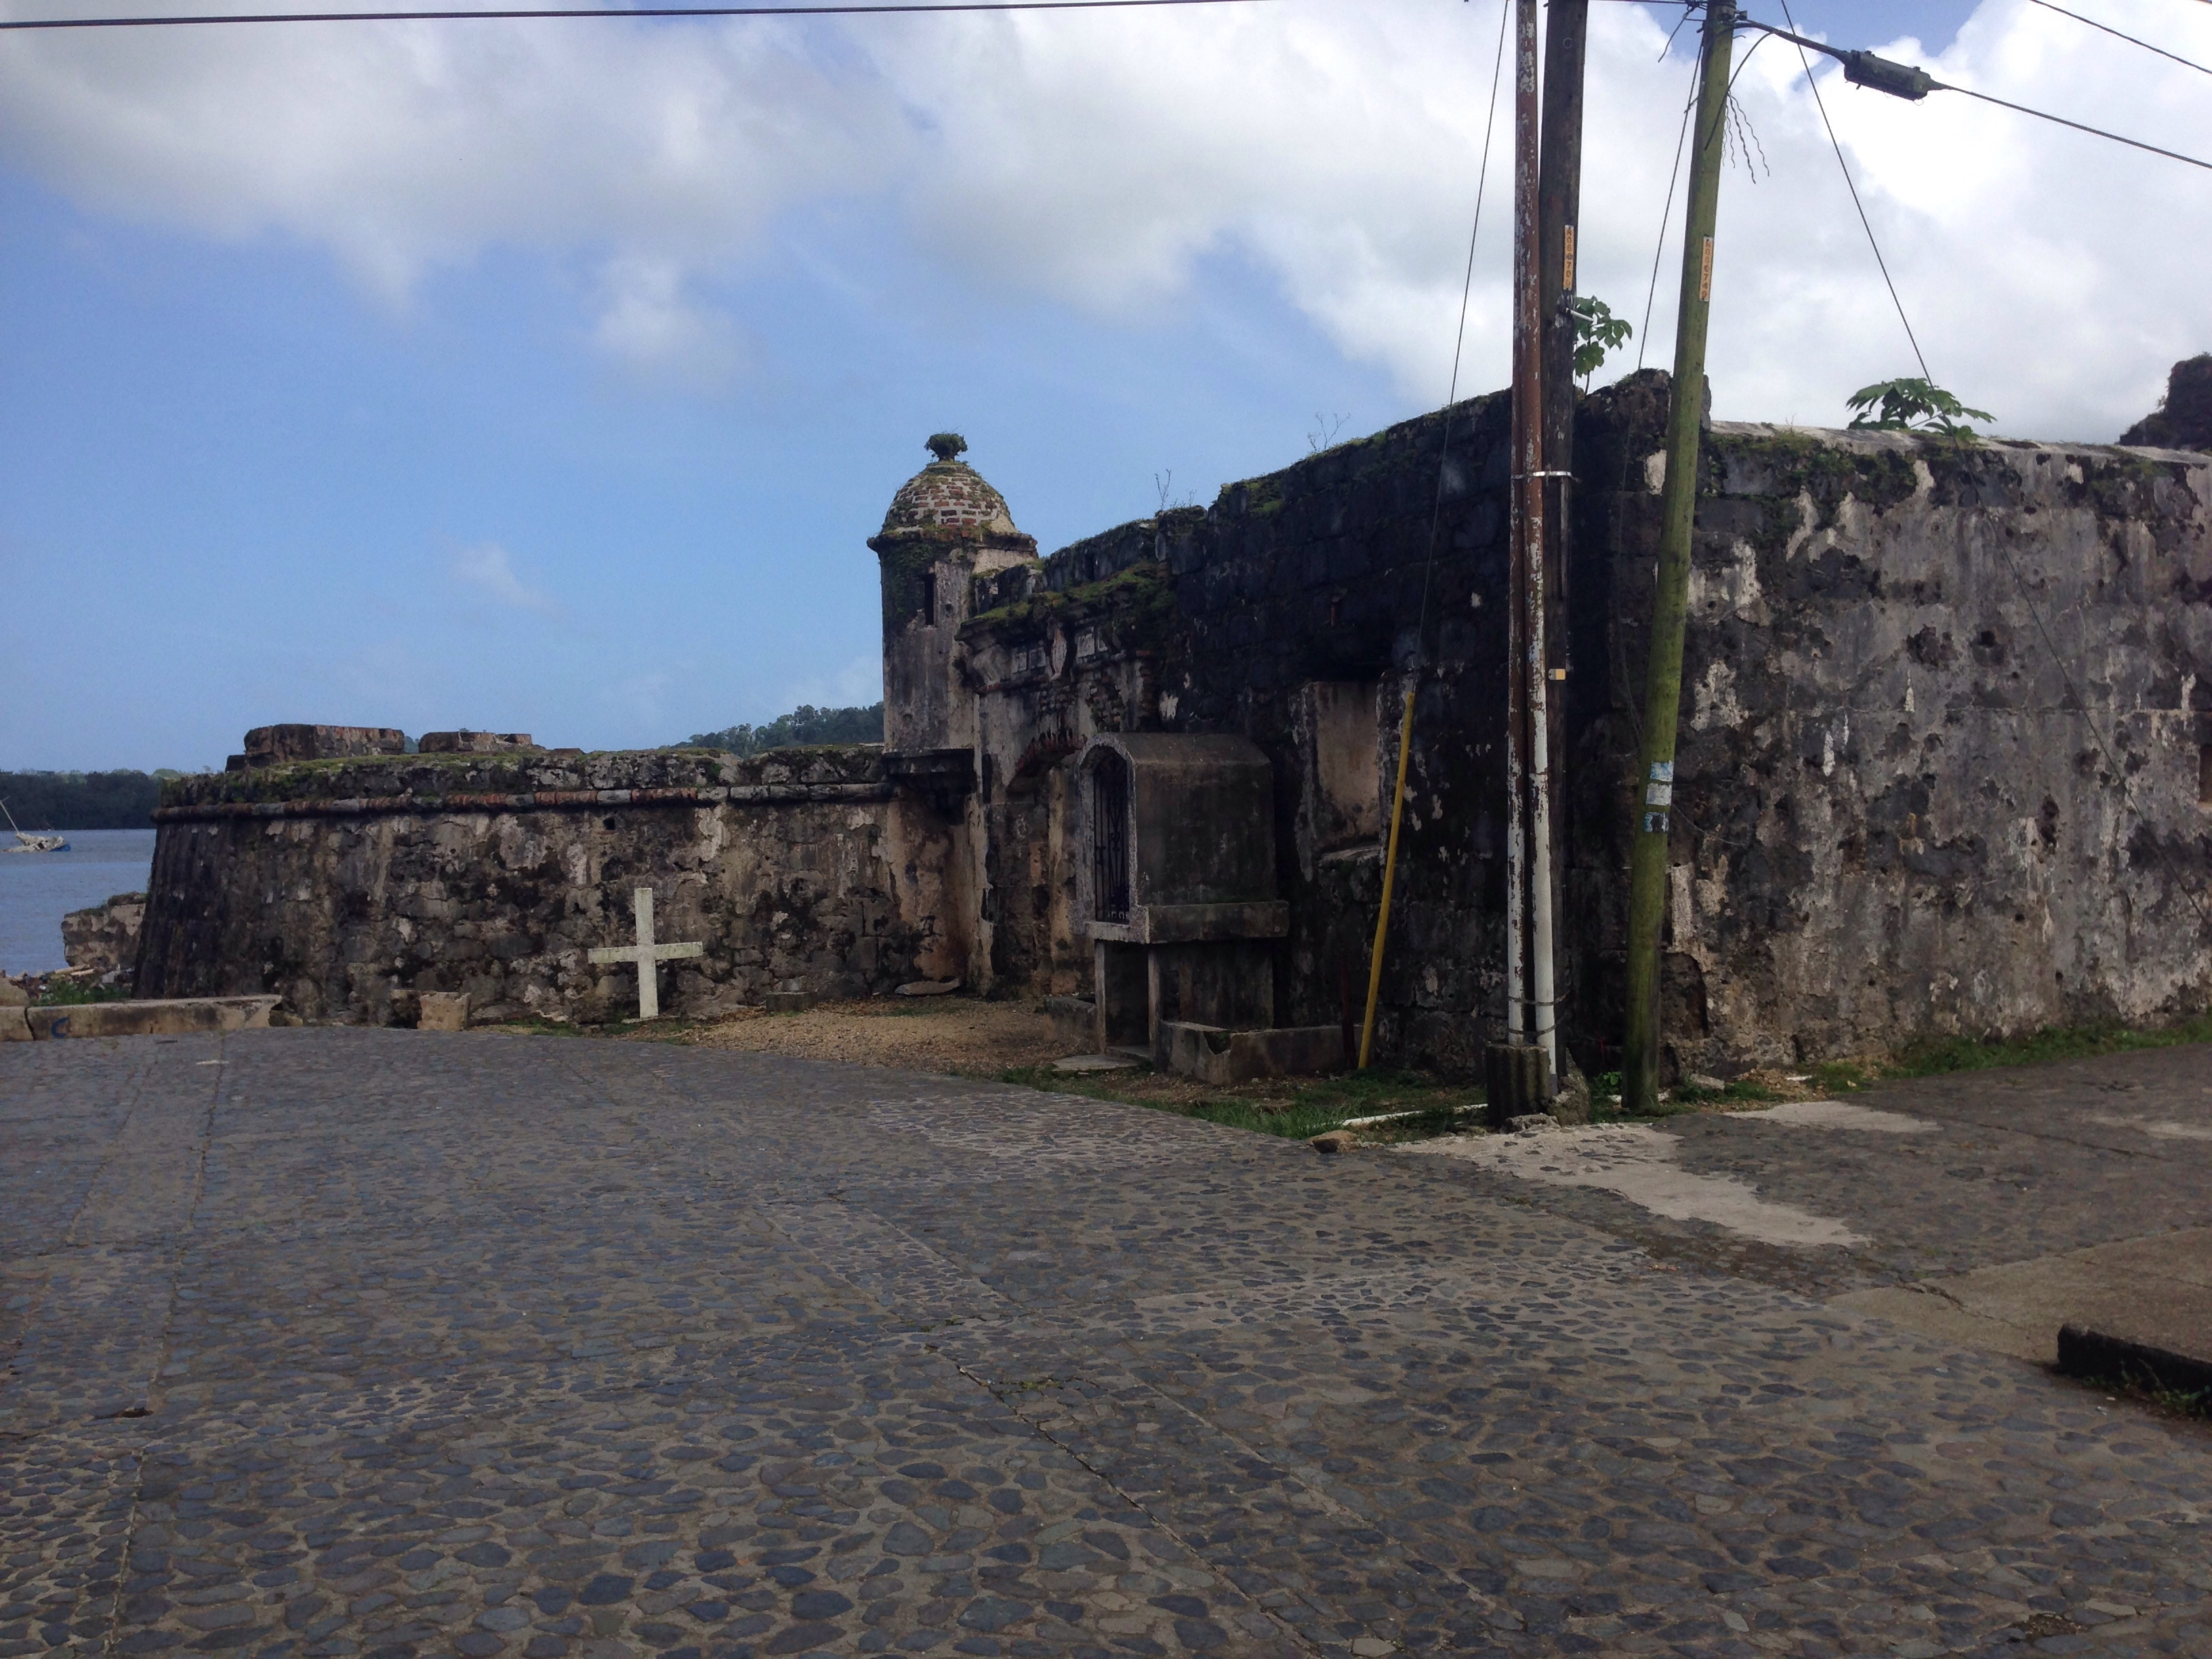 View of Fort San Lorenzo approaching from the street.